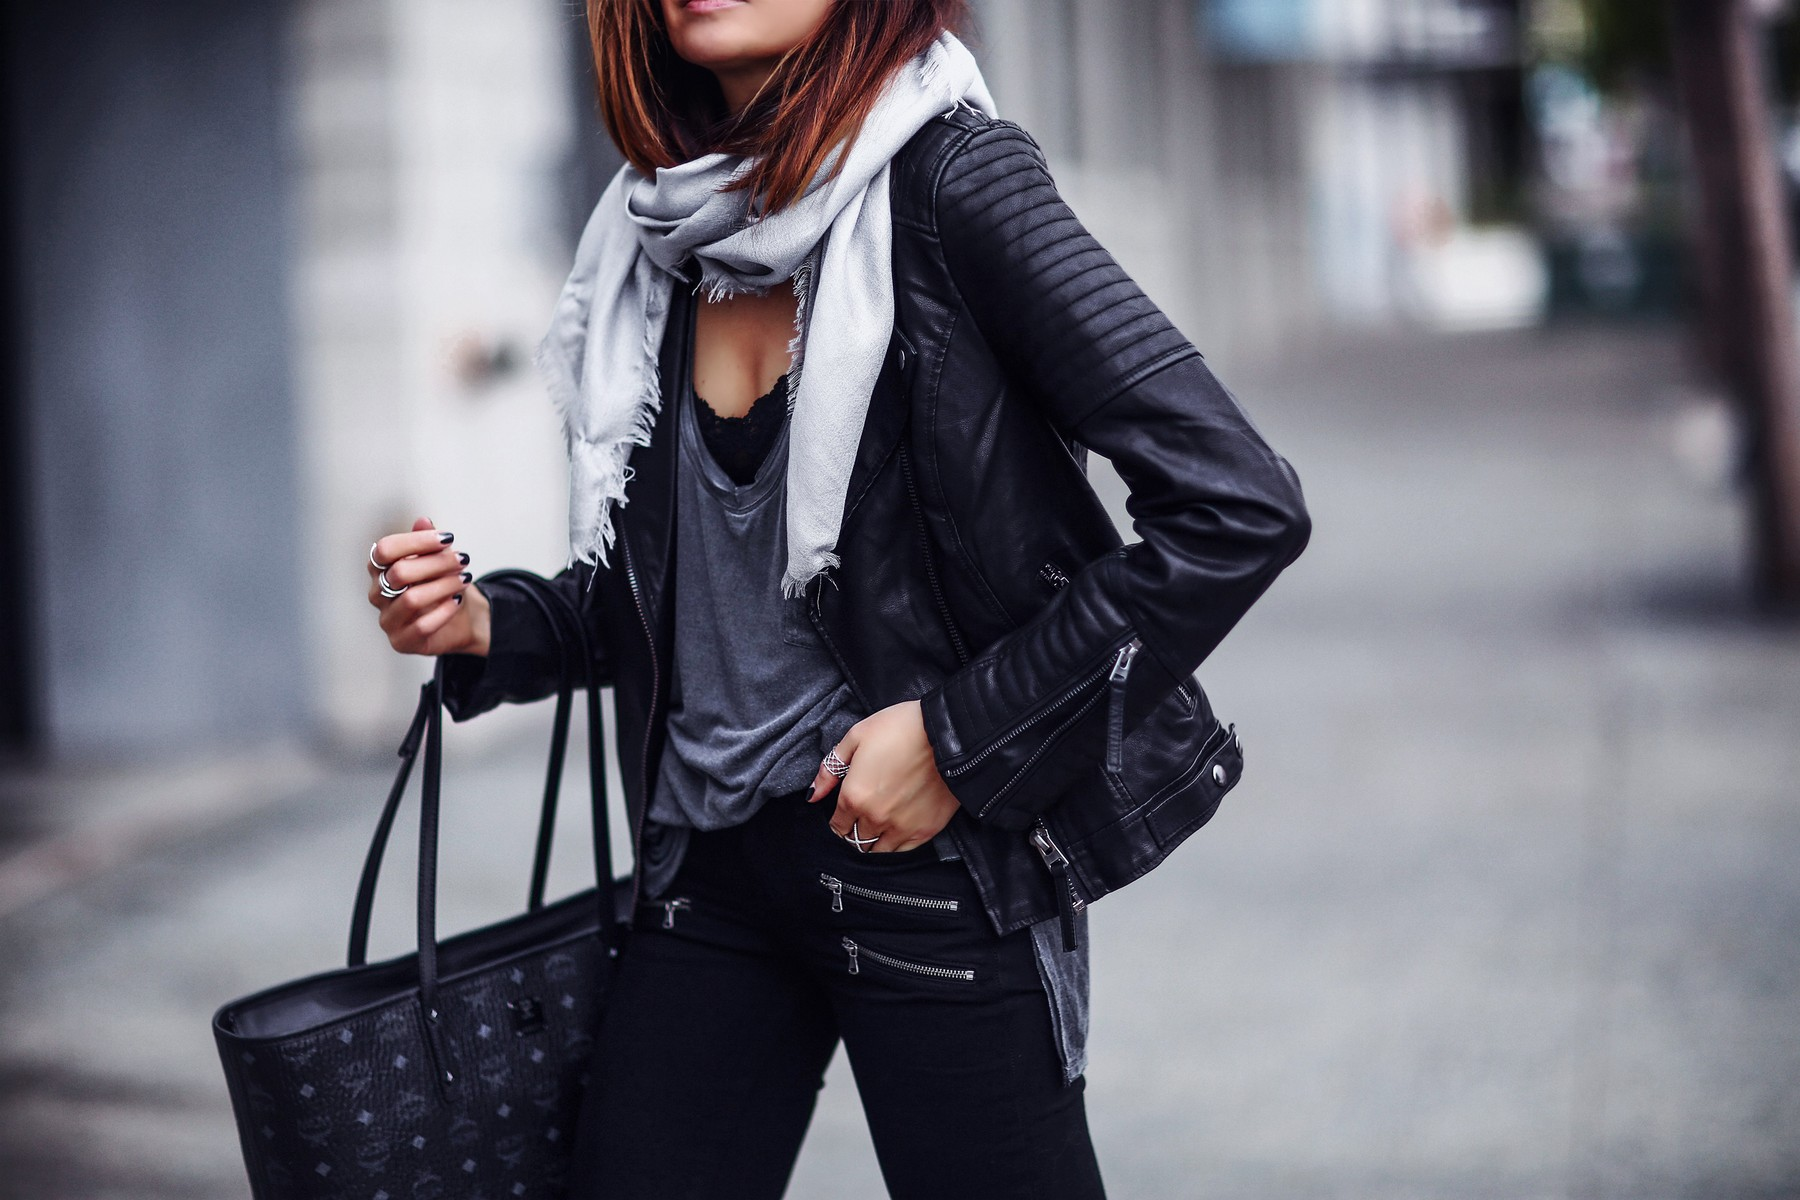 scarf, black leather jacket, chic tote bag